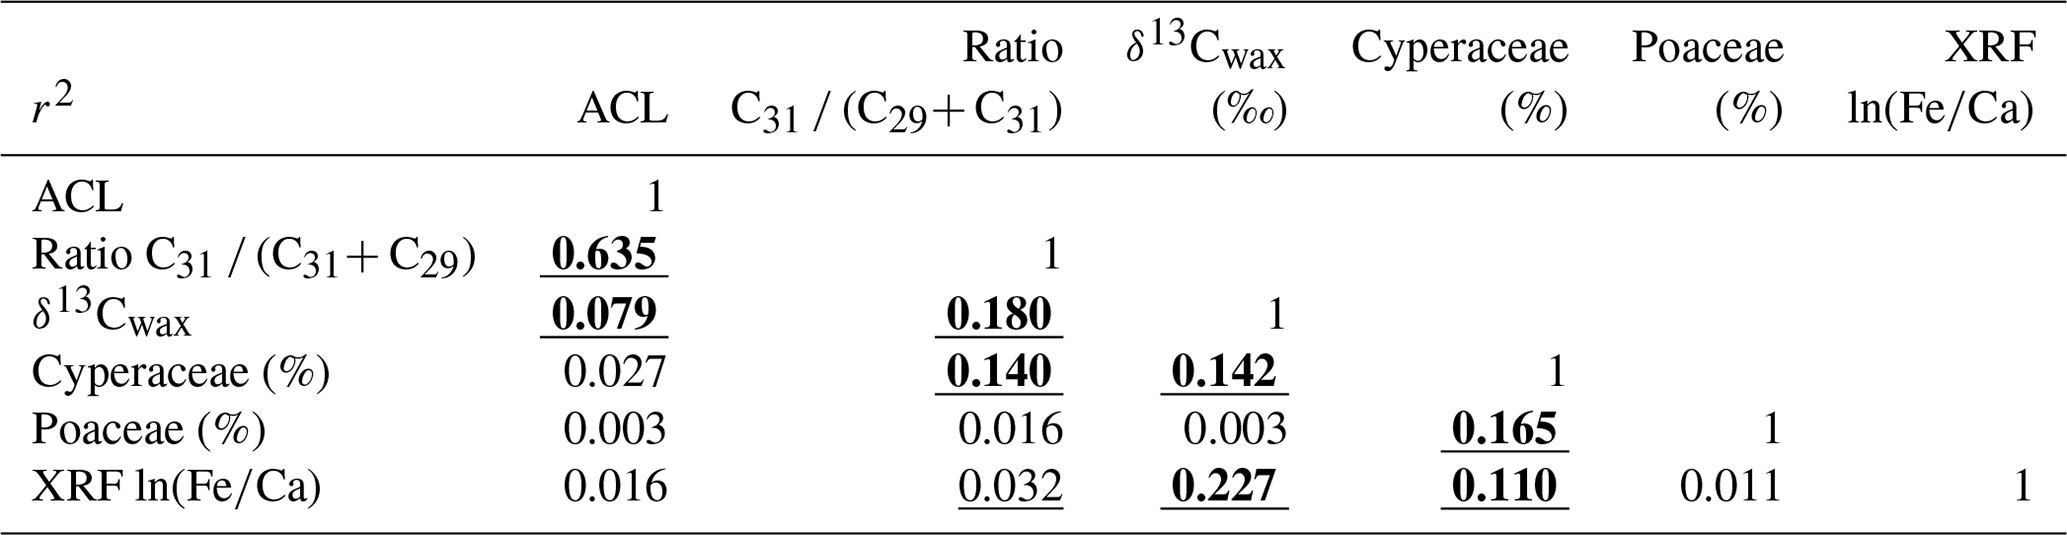 CP - Effects of atmospheric CO2 variability of the past 800 kyr on